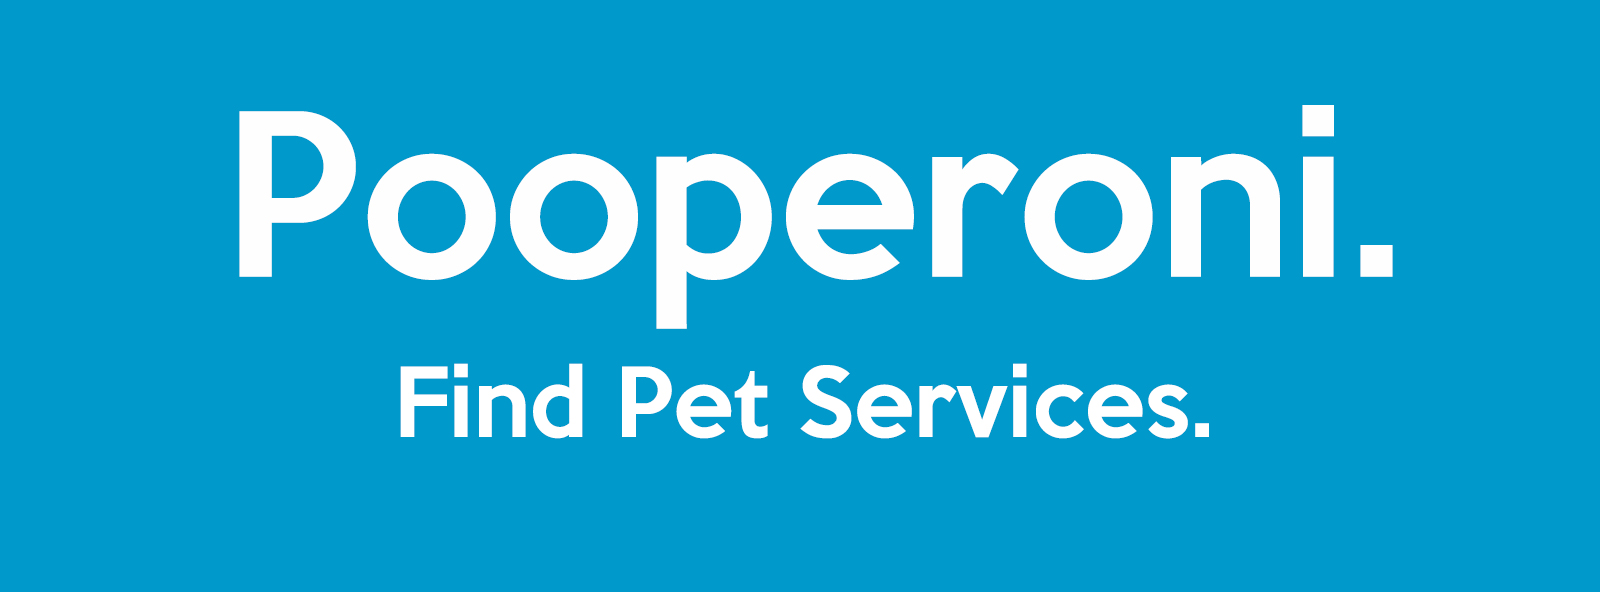 dog poop cleanup and dog poop removal services